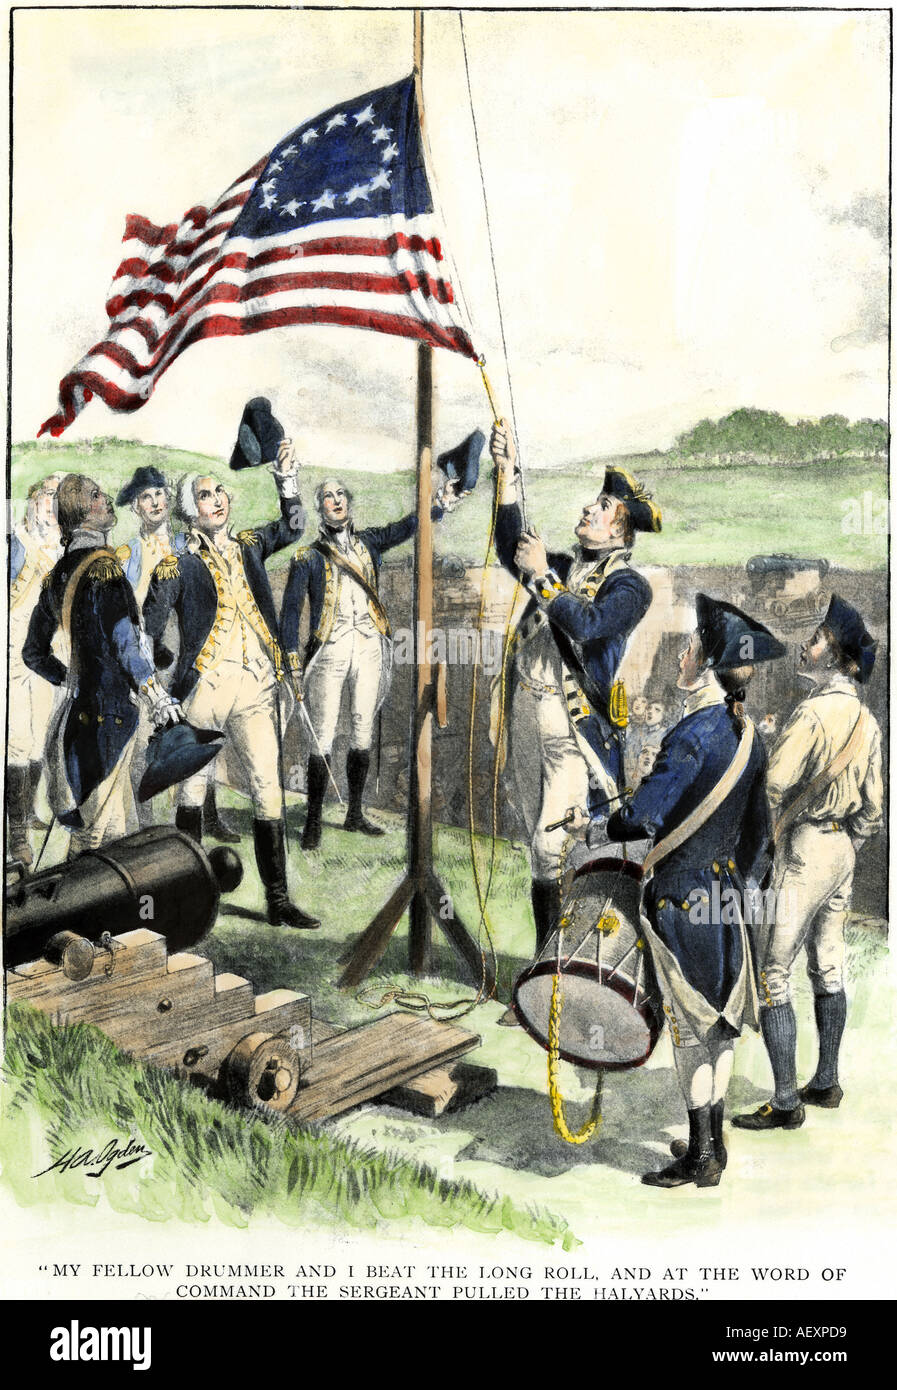 American soldiers hoisting the 13-star flag during the Revolutionary War. Hand-colored halftone of an illustration - Stock Image